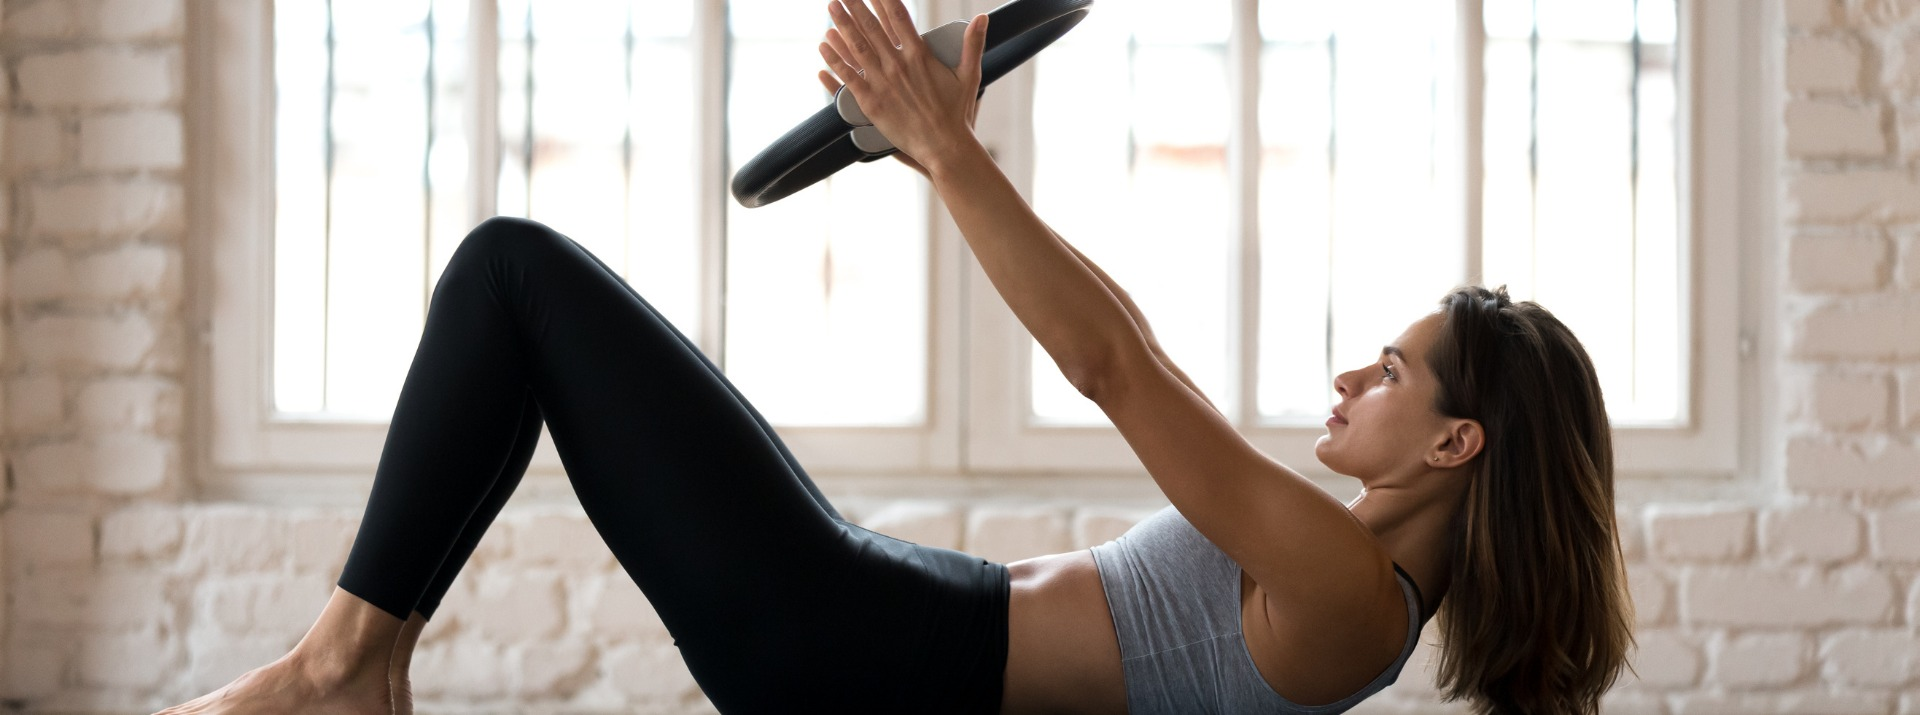 Get stronger and fitter with Pilates